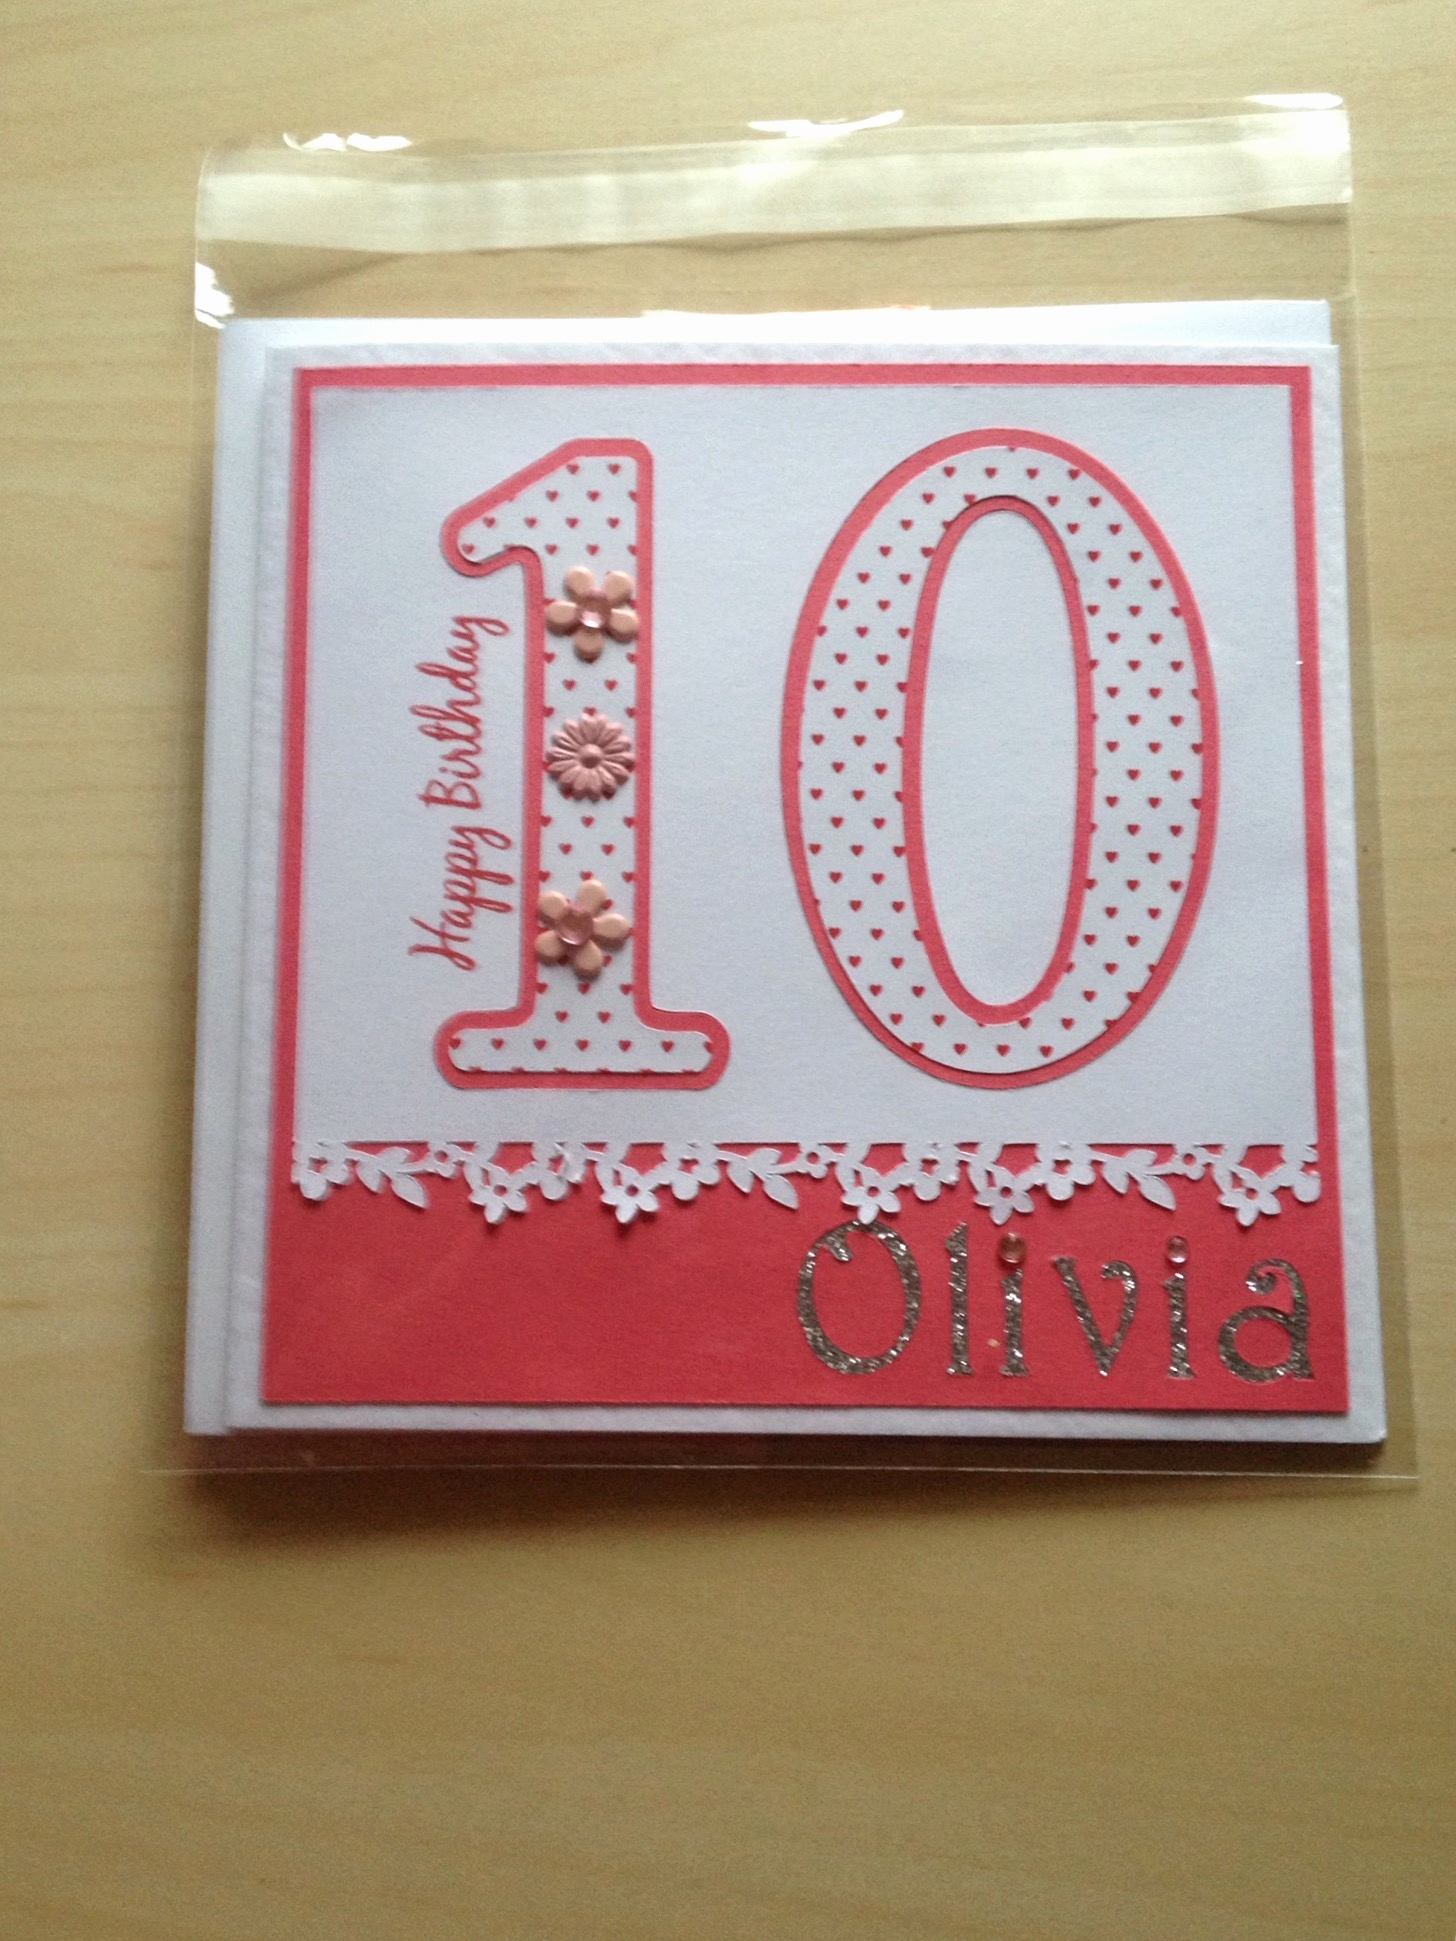 10th birthday card messages ; 8-year-old-birthday-card-ideas-awesome-10th-birthday-wishes-birthday-messages-for-10-year-olds-of-8-year-old-birthday-card-ideas